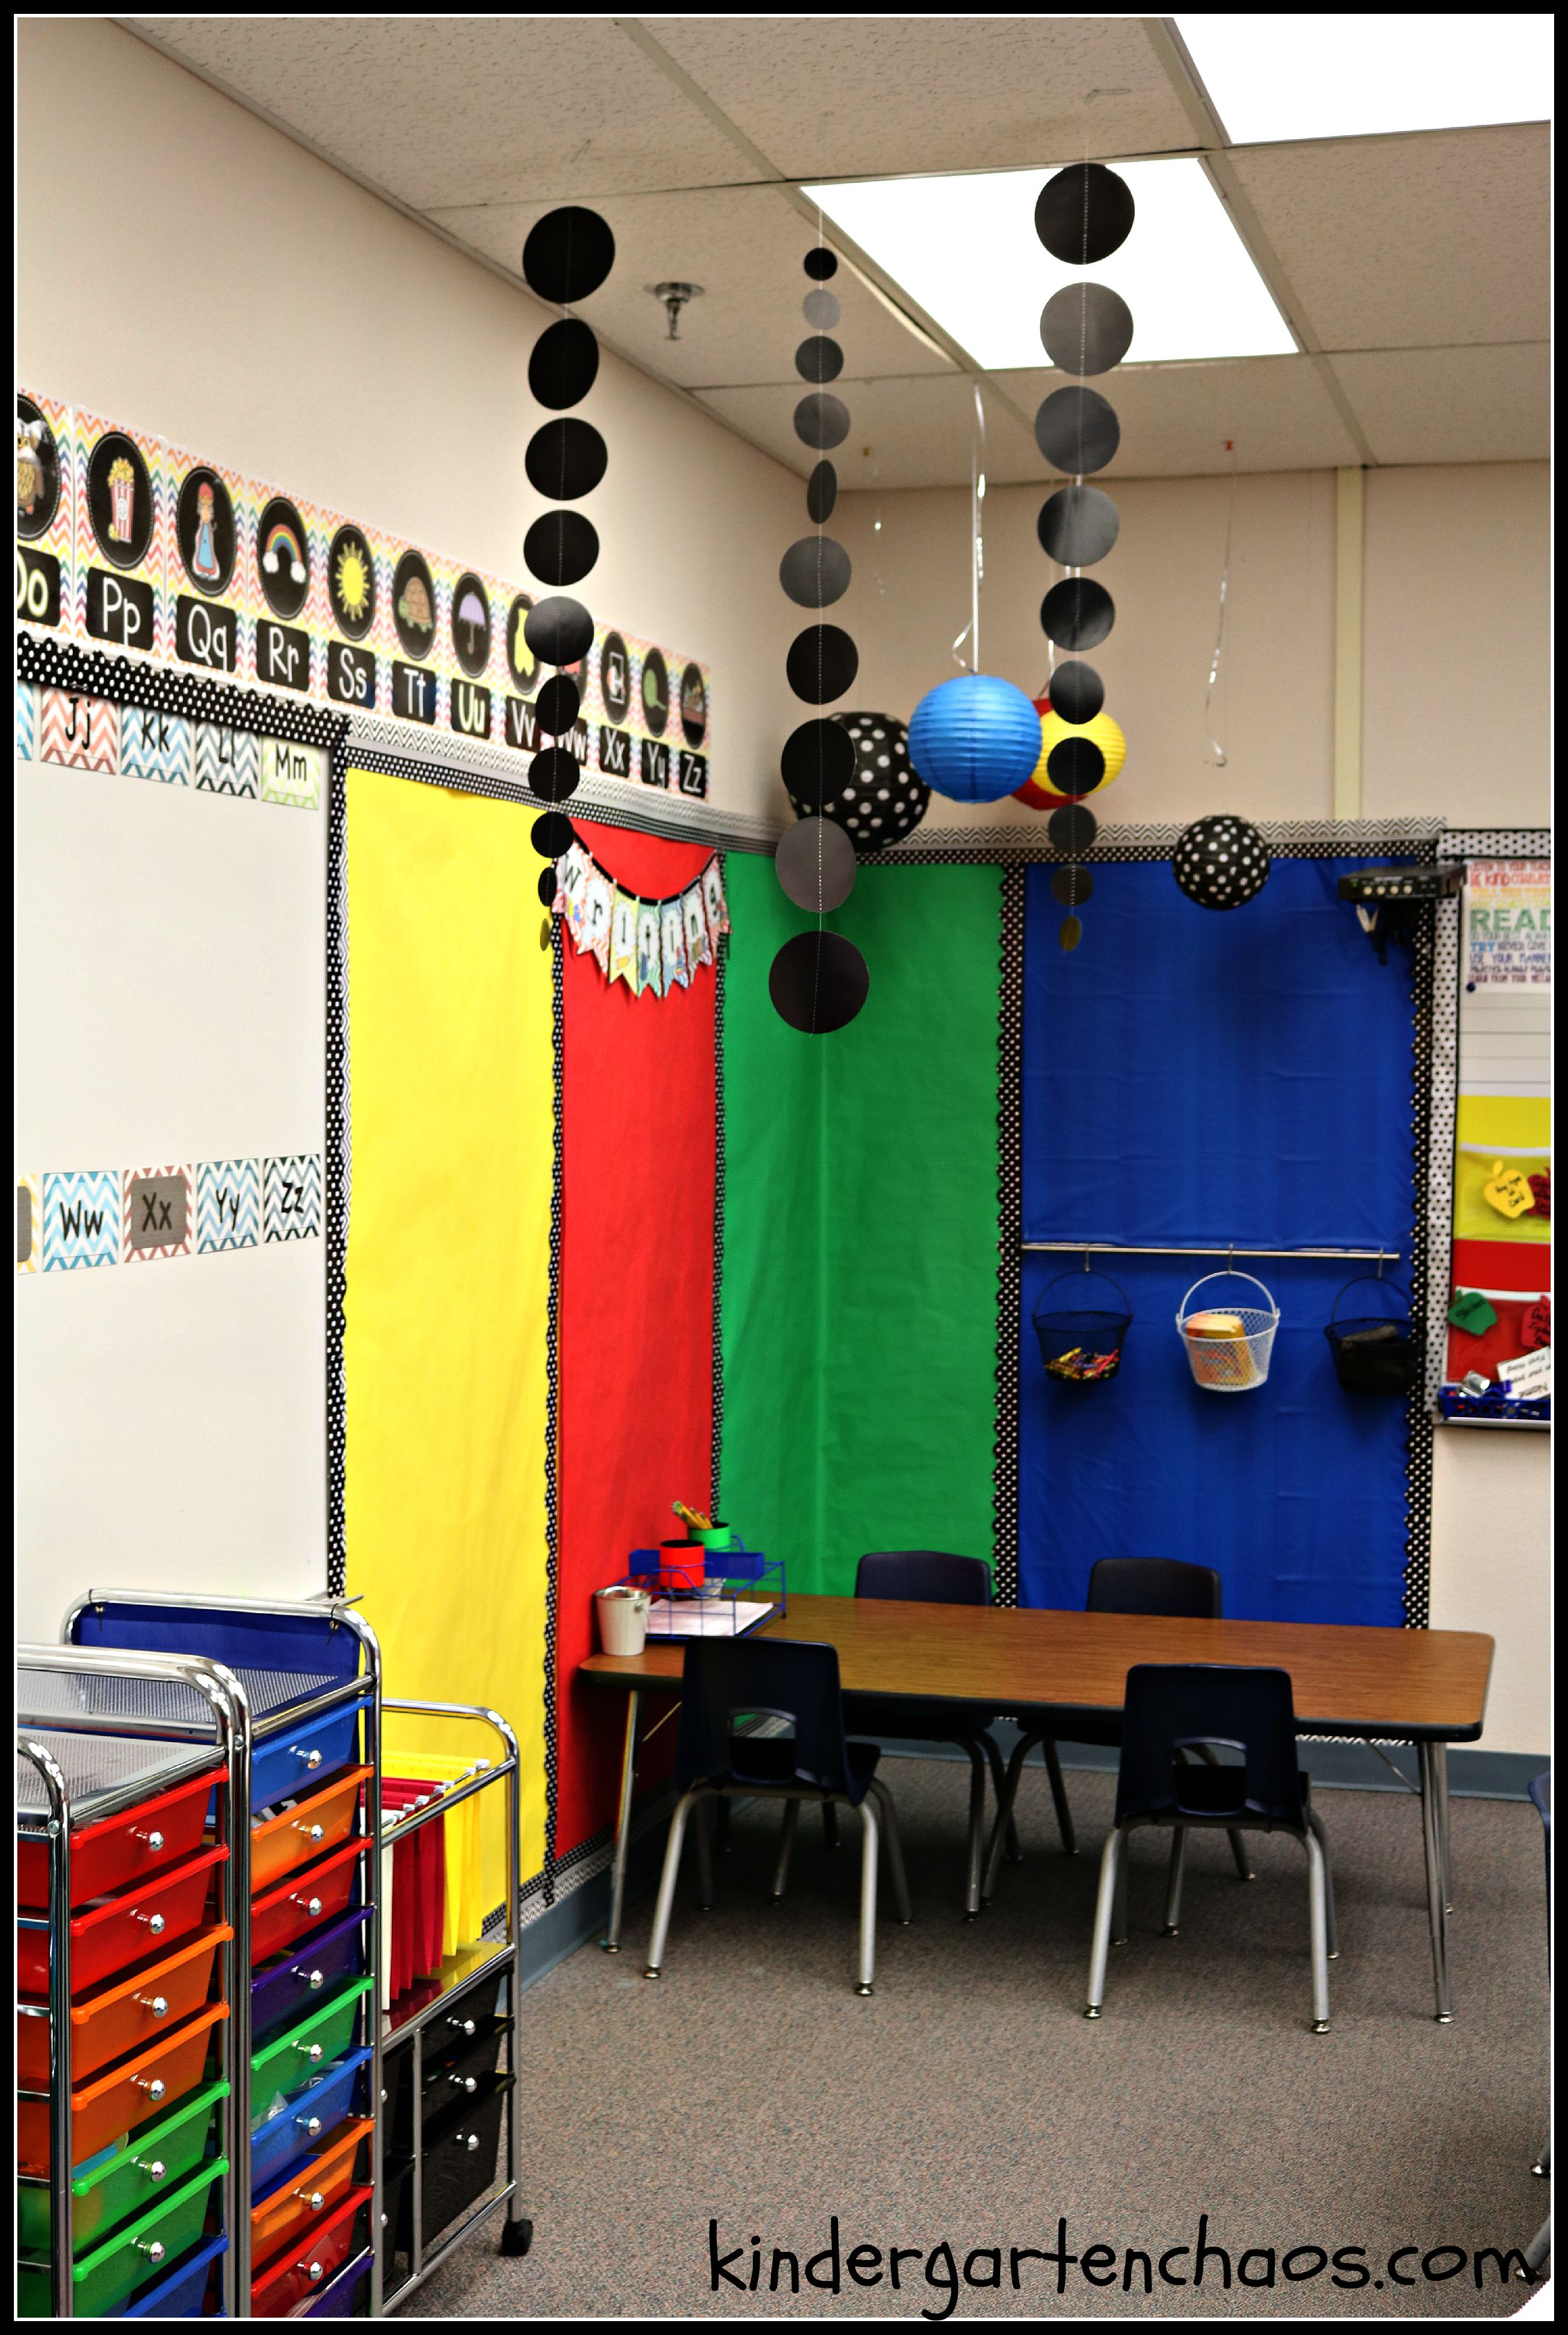 Classroom Ornament Ideas ~ My kindergarten classroom reveal organization